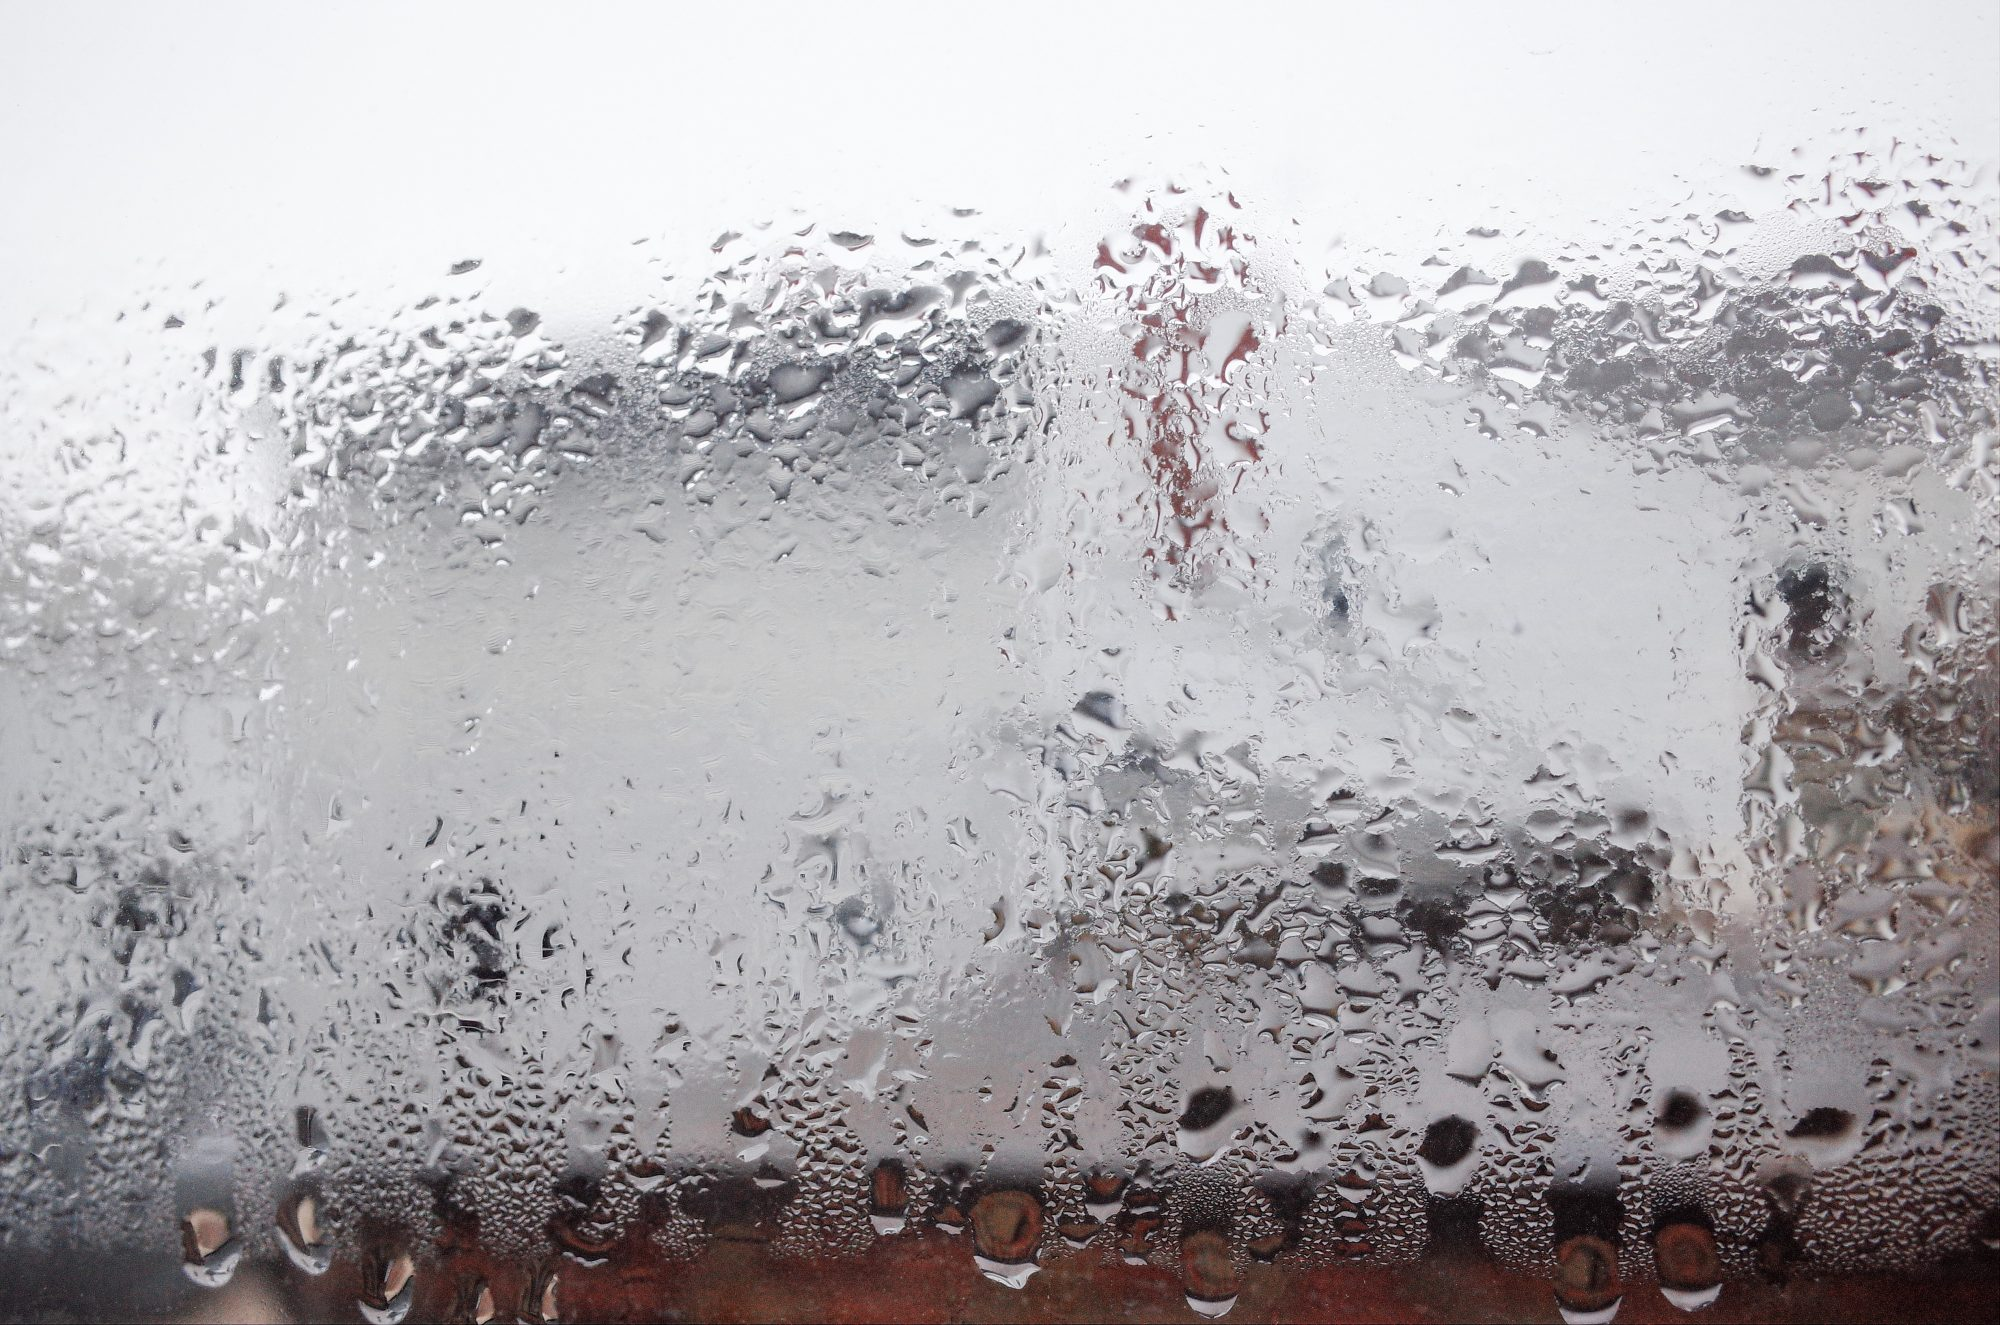 Condensation on window, out of focus. Focus set on the water droplets. Macro mode, RICOH GR II.